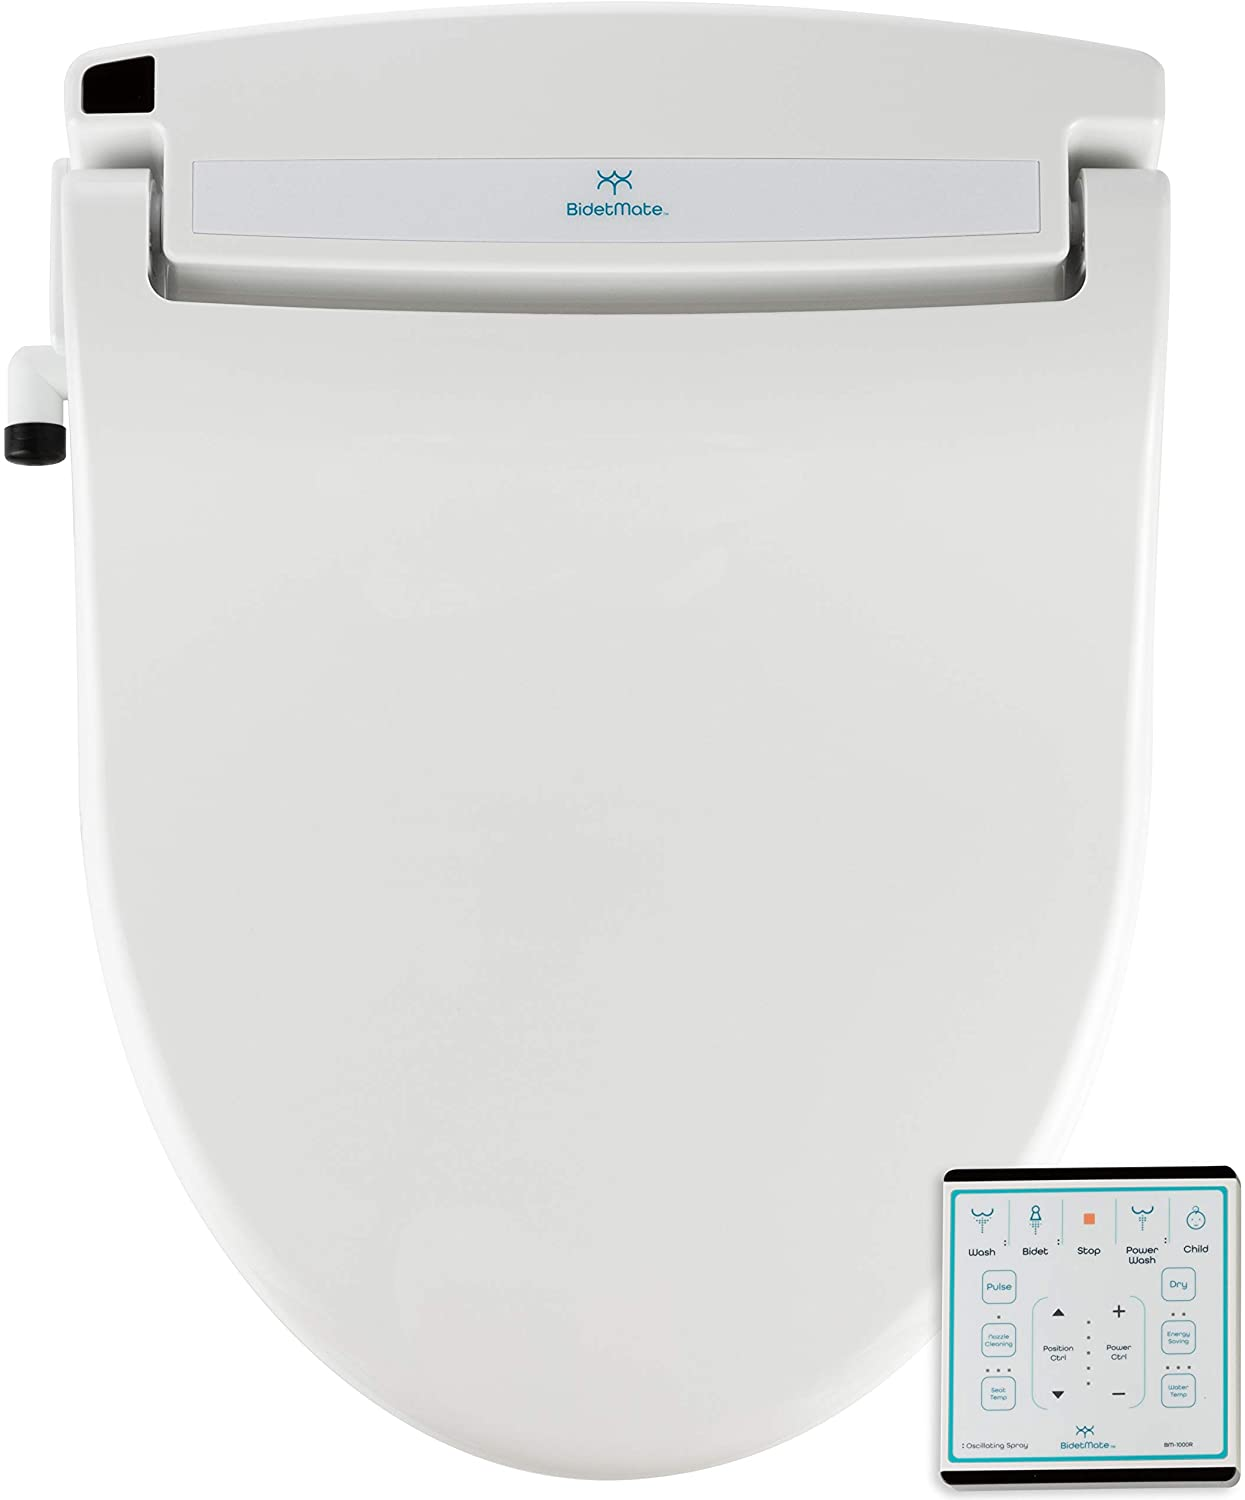 BidetMate 1000R-E Series Electric Bidet Heated Smart Toilet Seat with Heated Water, Wireless Remote, and Heated Dryer - Adjustable and Self-Cleaning - Fits Elongated Toilets